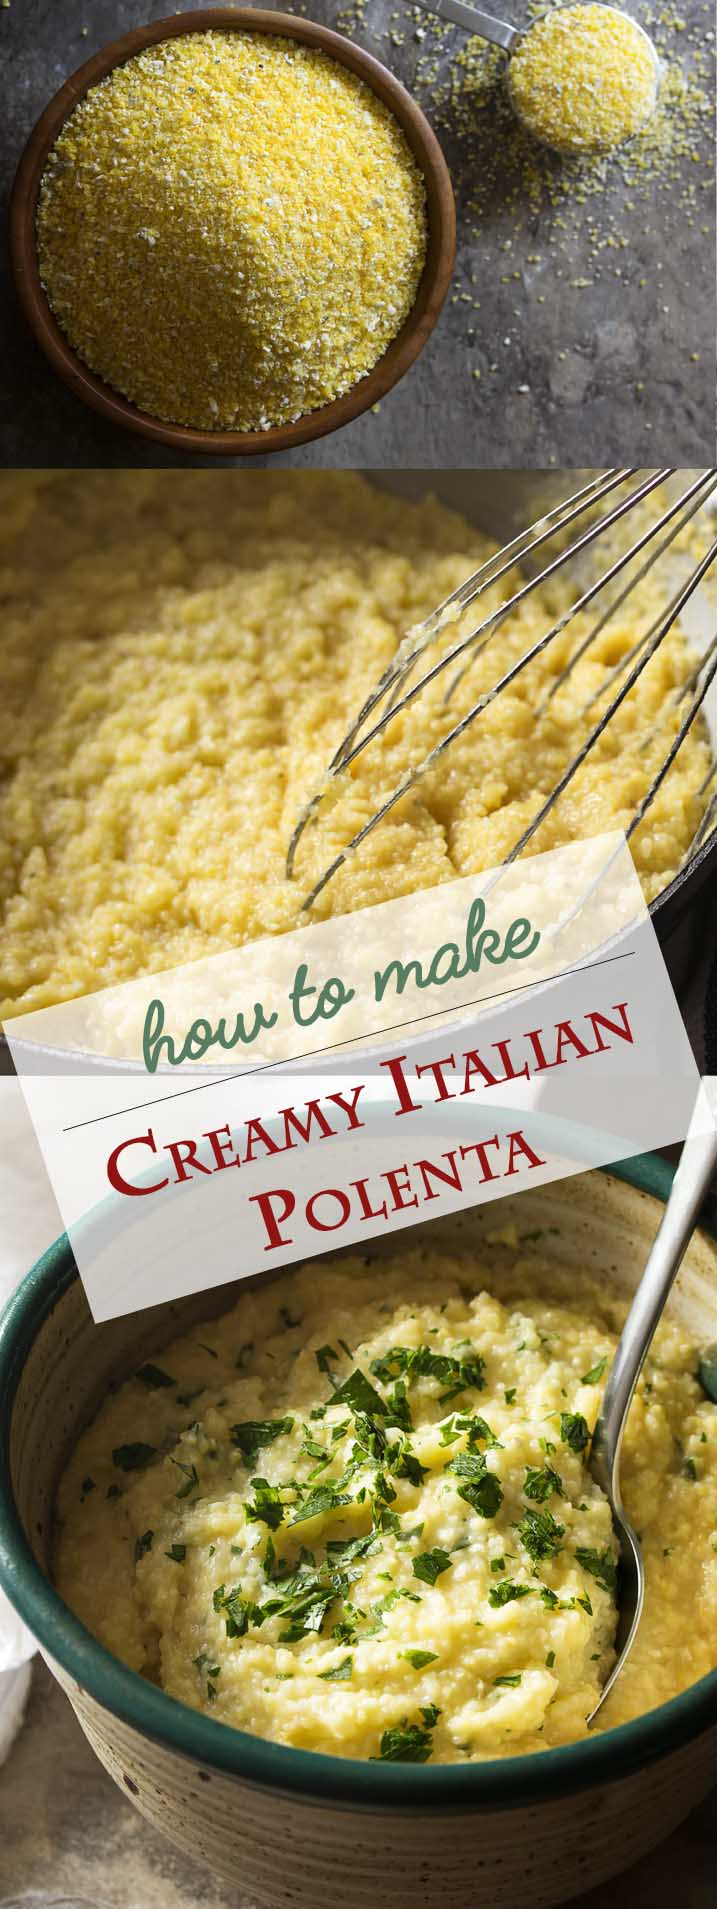 It's easy to make creamy and lump free Italian polenta so long as you follow a few simple rules and step away from that boiling water. Eat it hot and soft right from the pot or chill it and give a fry. Either way it's great comfort food! | justalittlebitofbacon.com #polenta #sidedish #glutenfree #italianrecipes